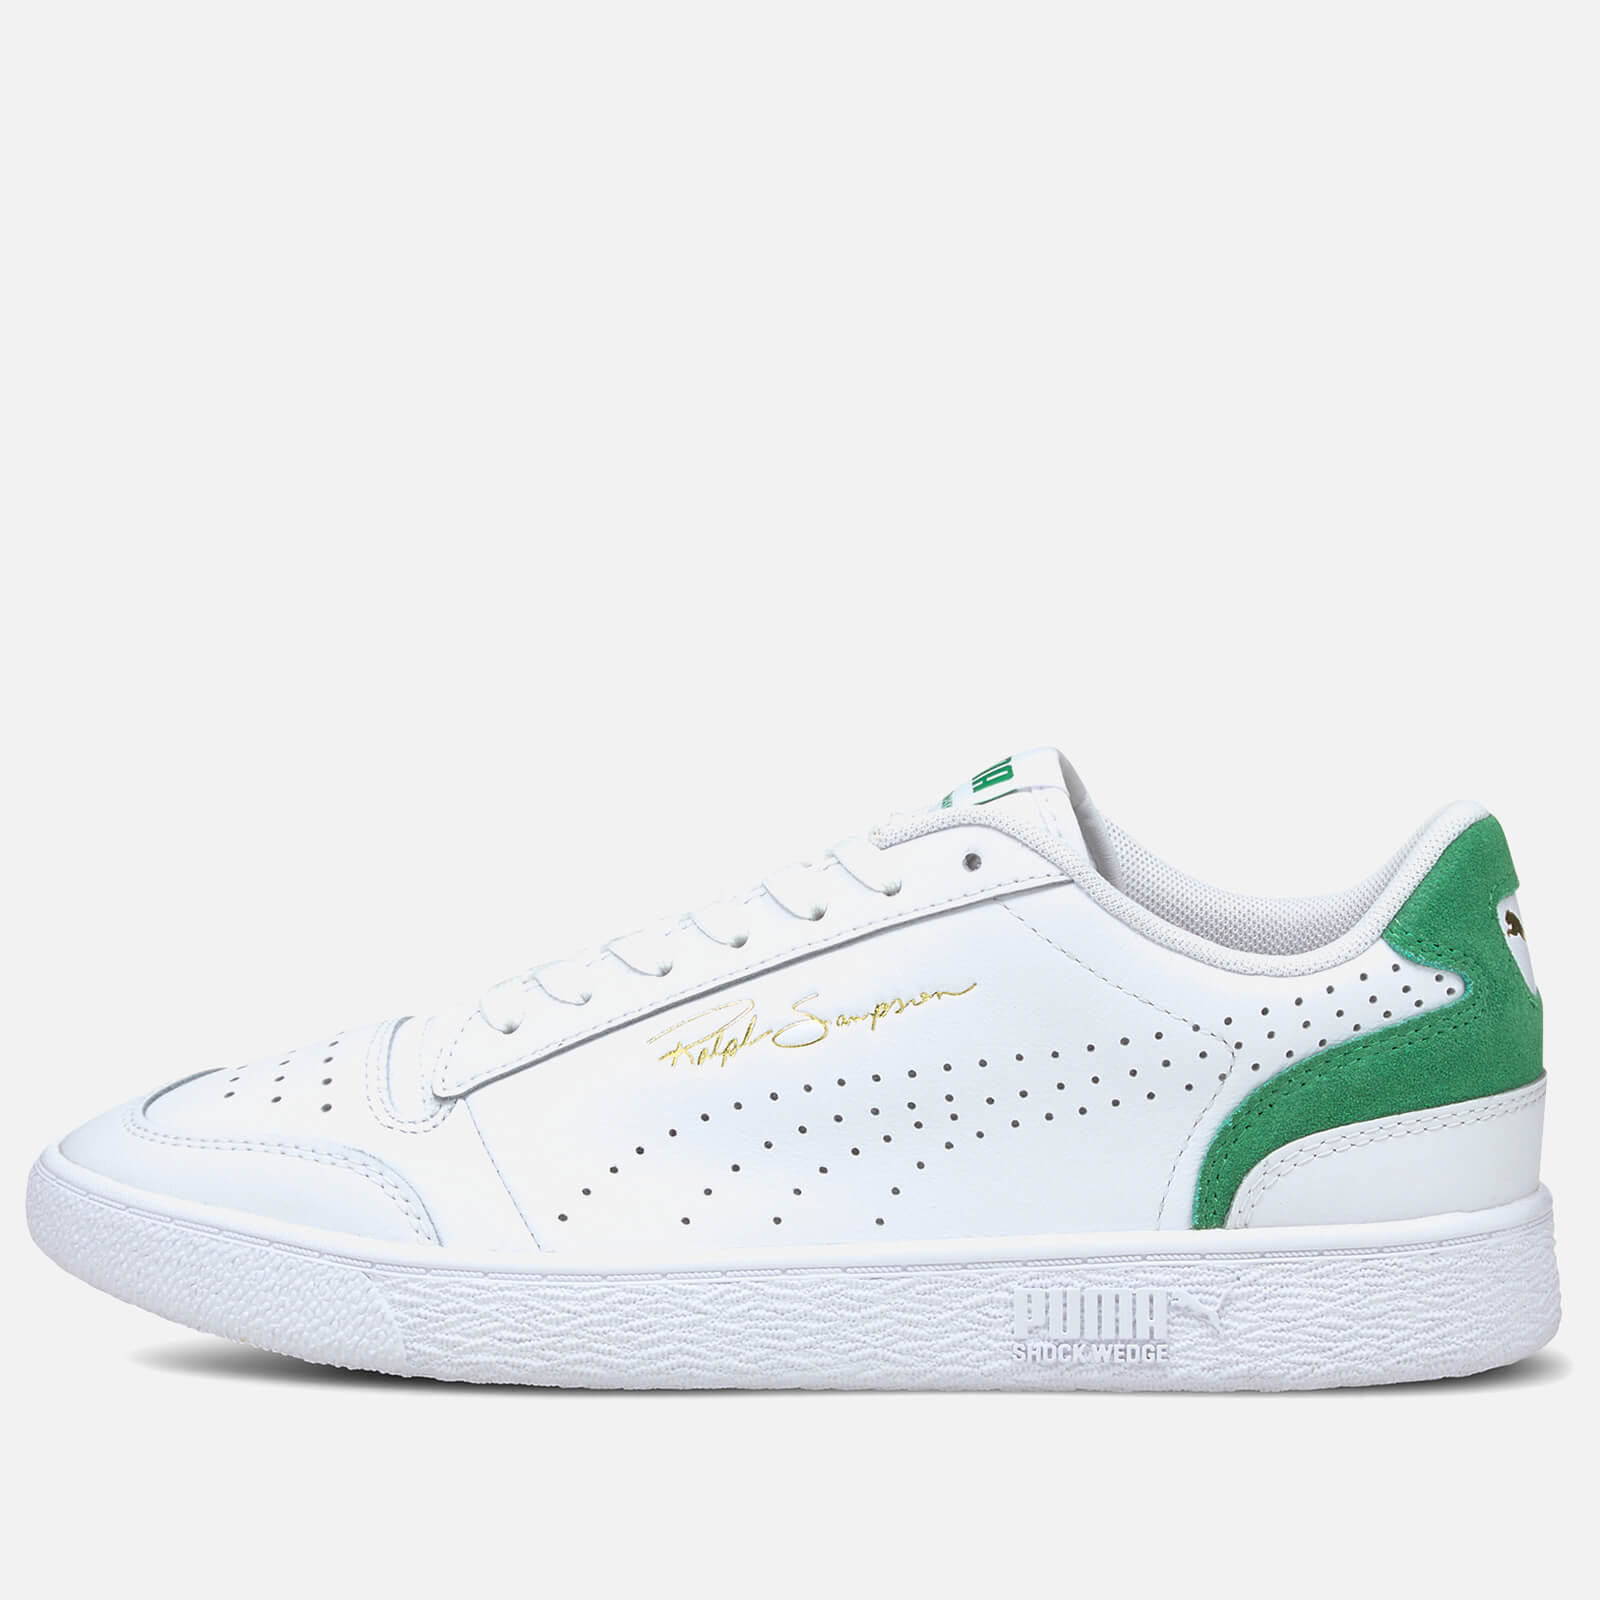 Puma Mens Ralph Sampson Lo Perforated Colourblock Trainers Puma White Amazon Green Uk 7